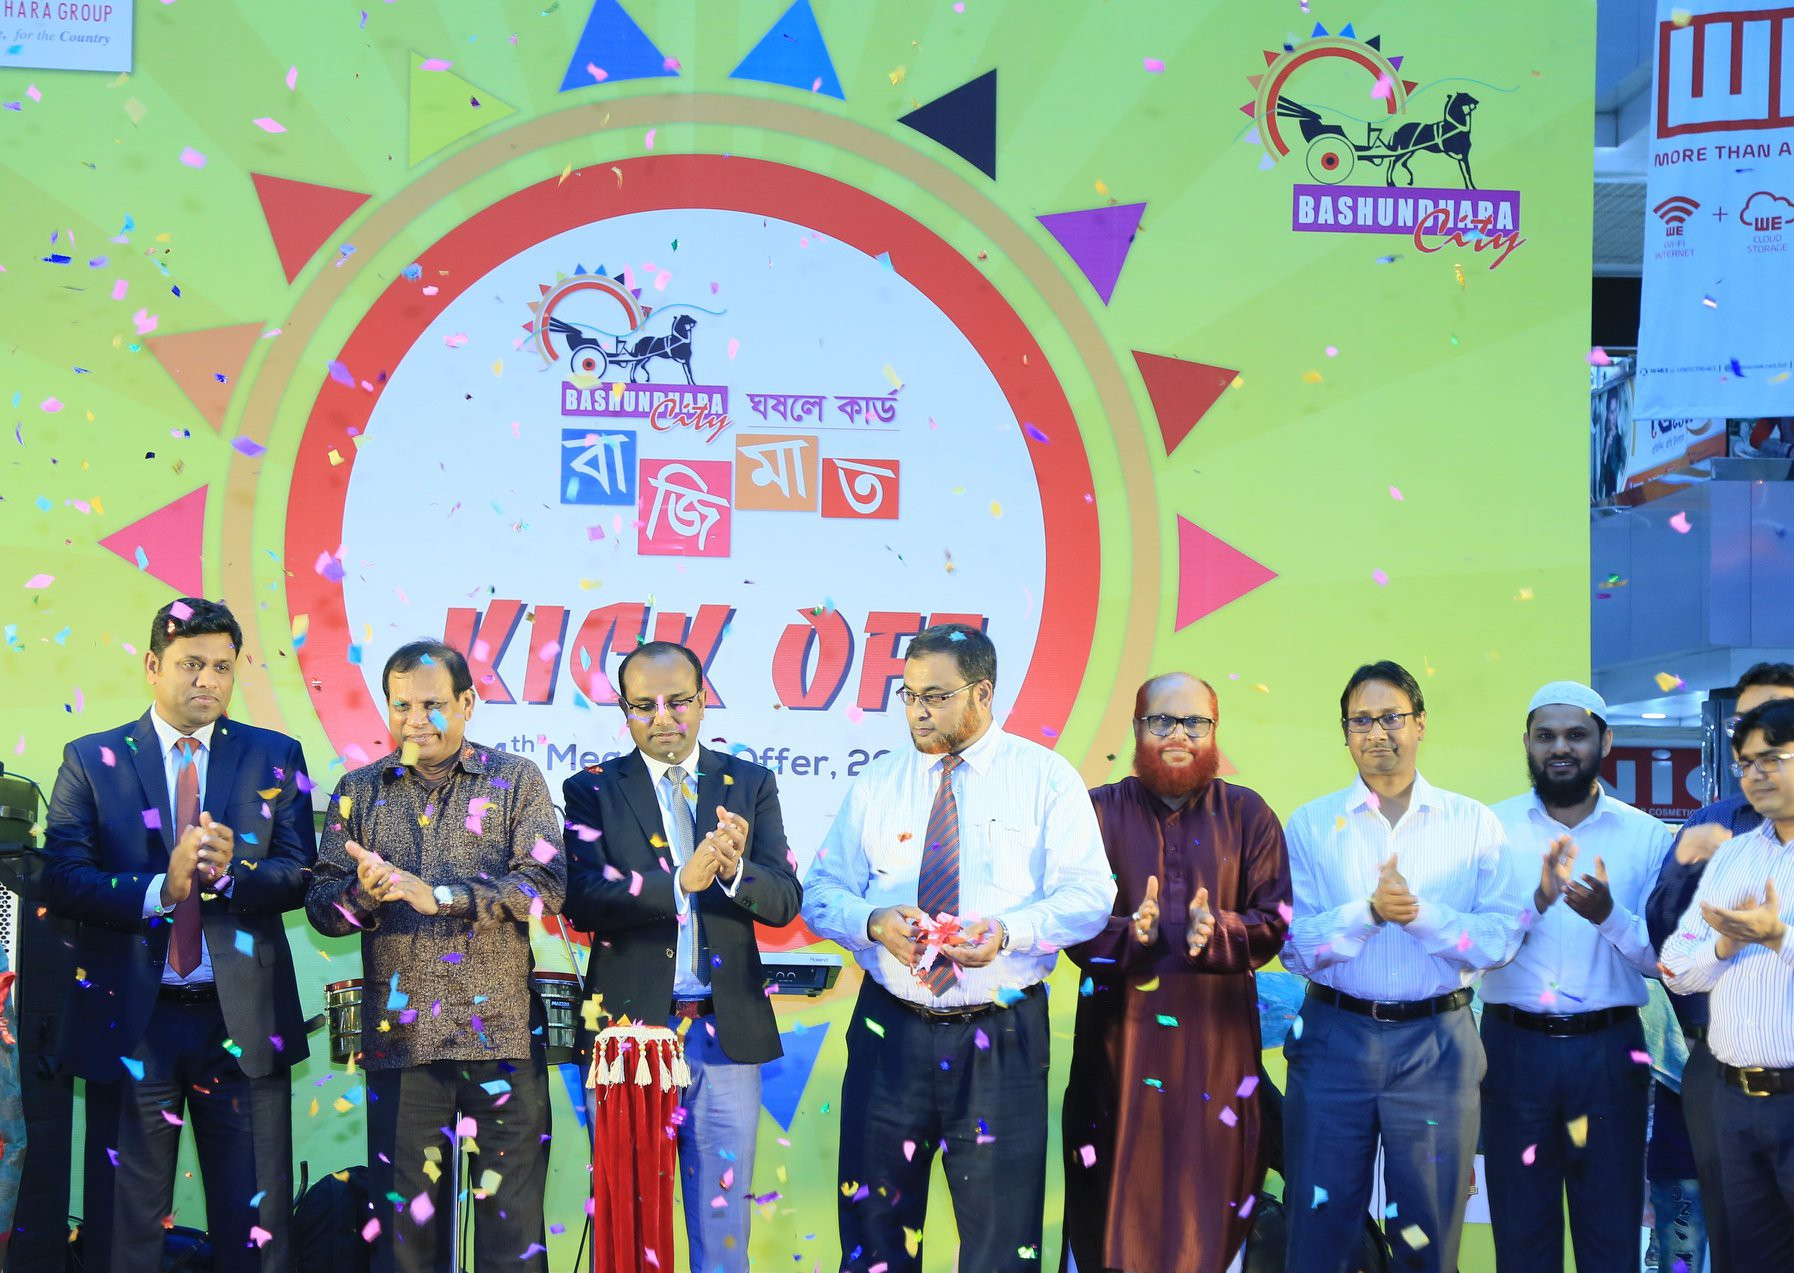 bashundhara city launches eid scratch card programme